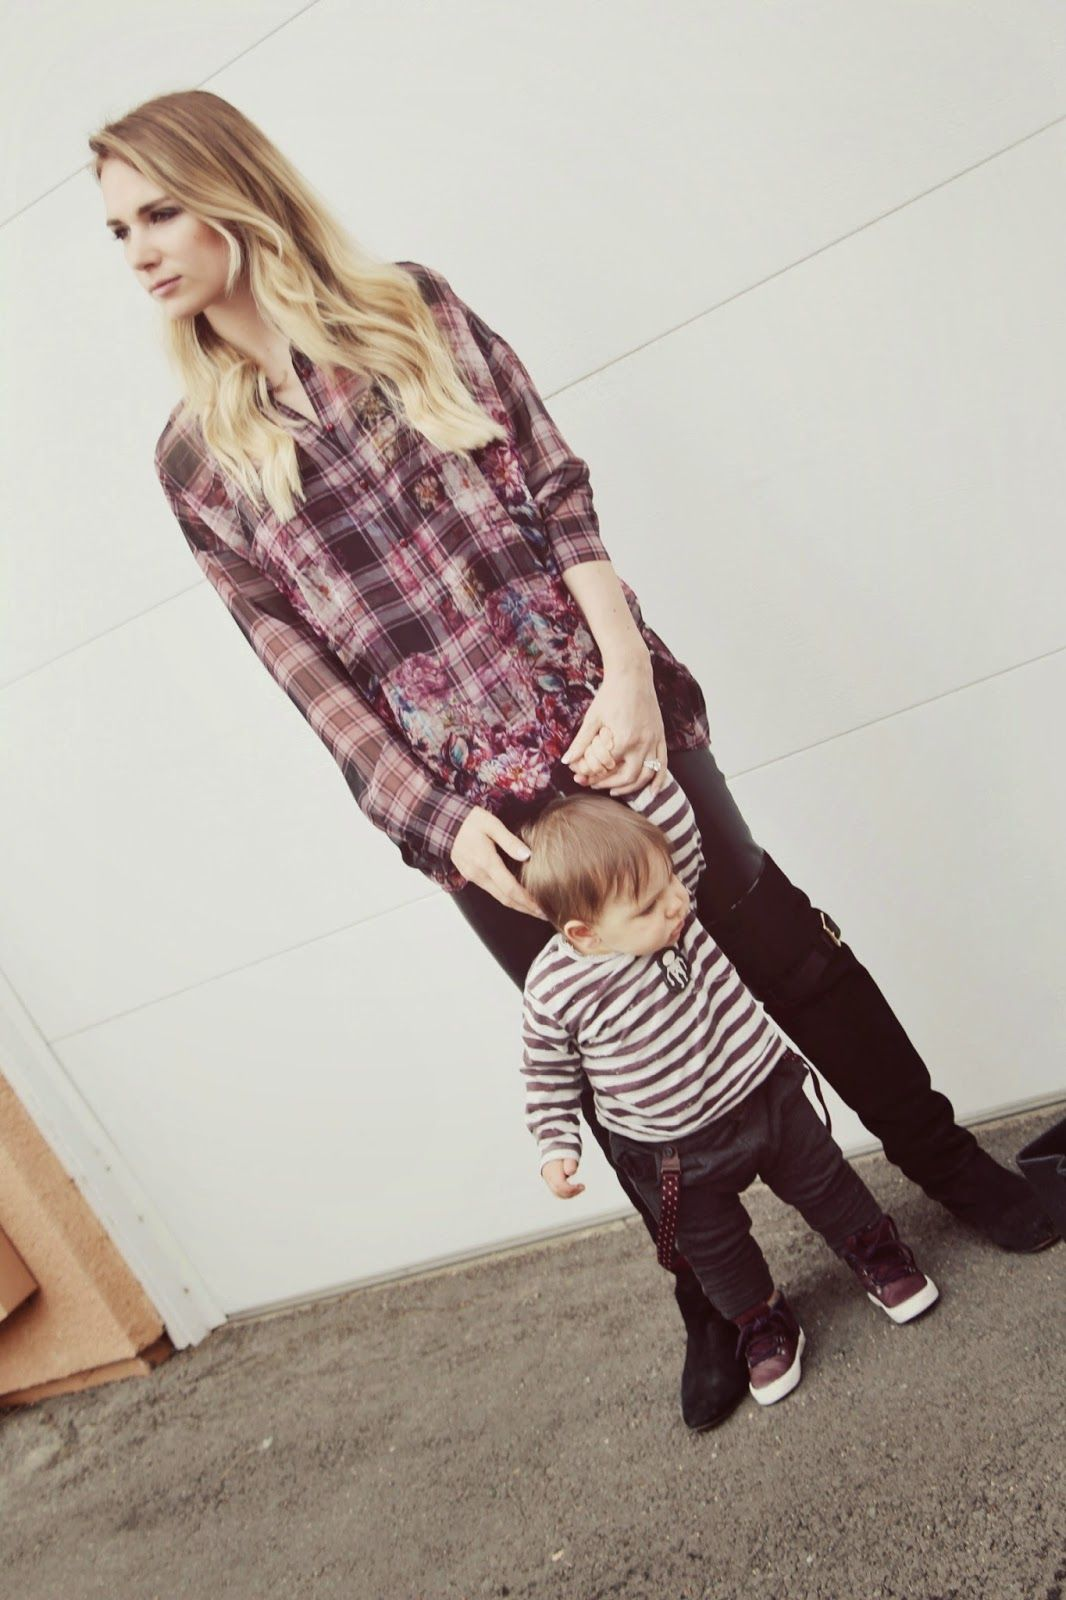 My Love and Beyond - Mommy & Baby Fashion Blog: Burgandy flower outfit